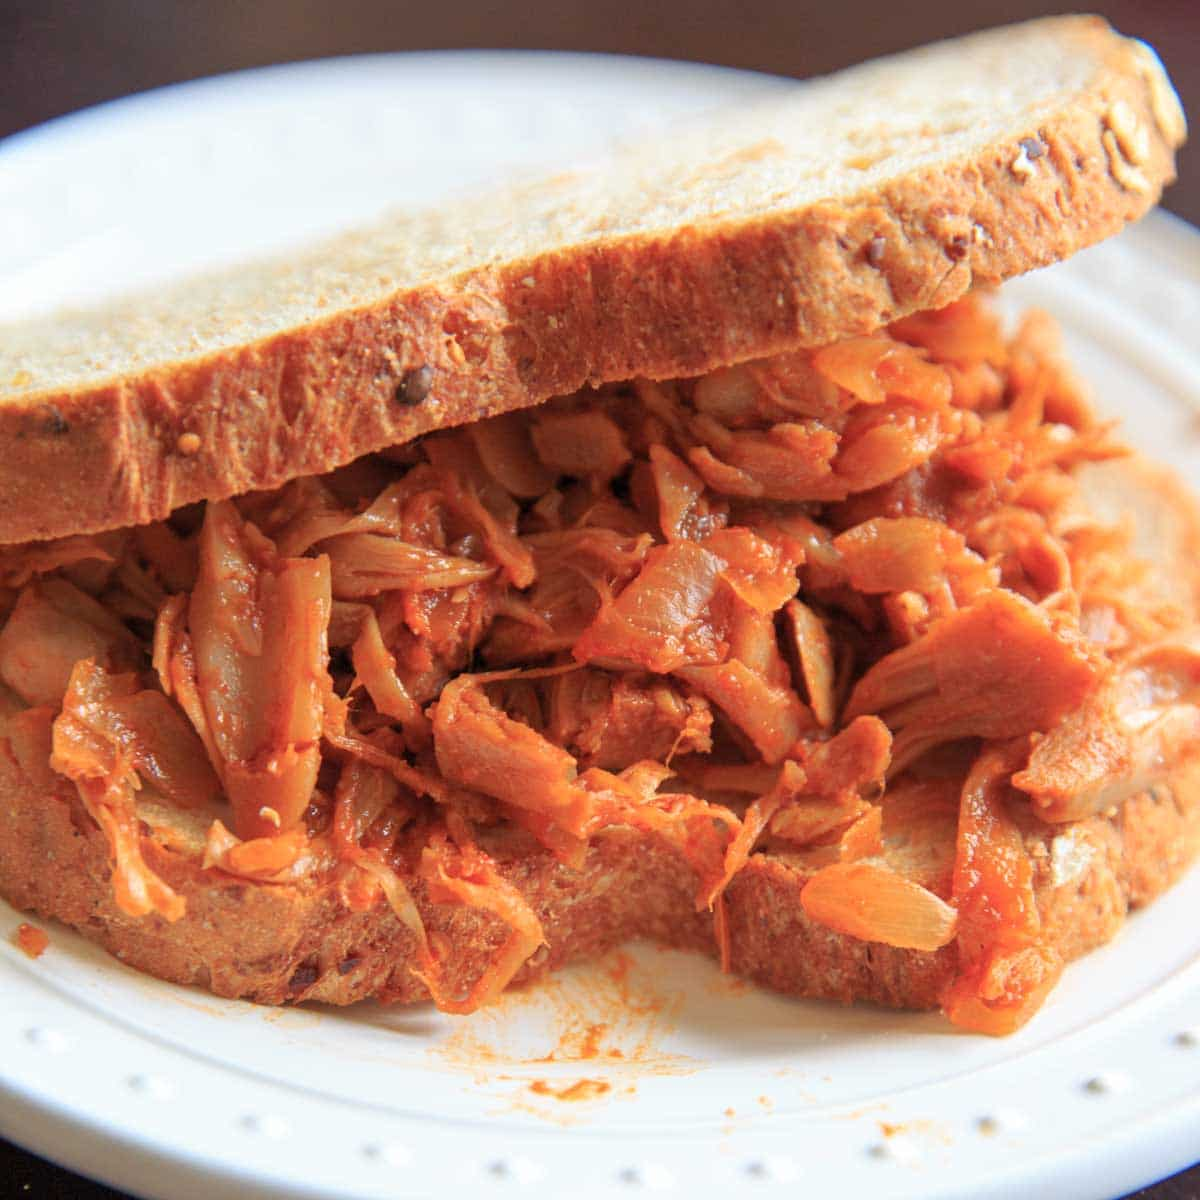 Vegan Pulled BBQ Jackfruit - eat it on a sandwich, in a taco, or by itself! Easy to make and customize based on your favorite flavor bbq sauce.